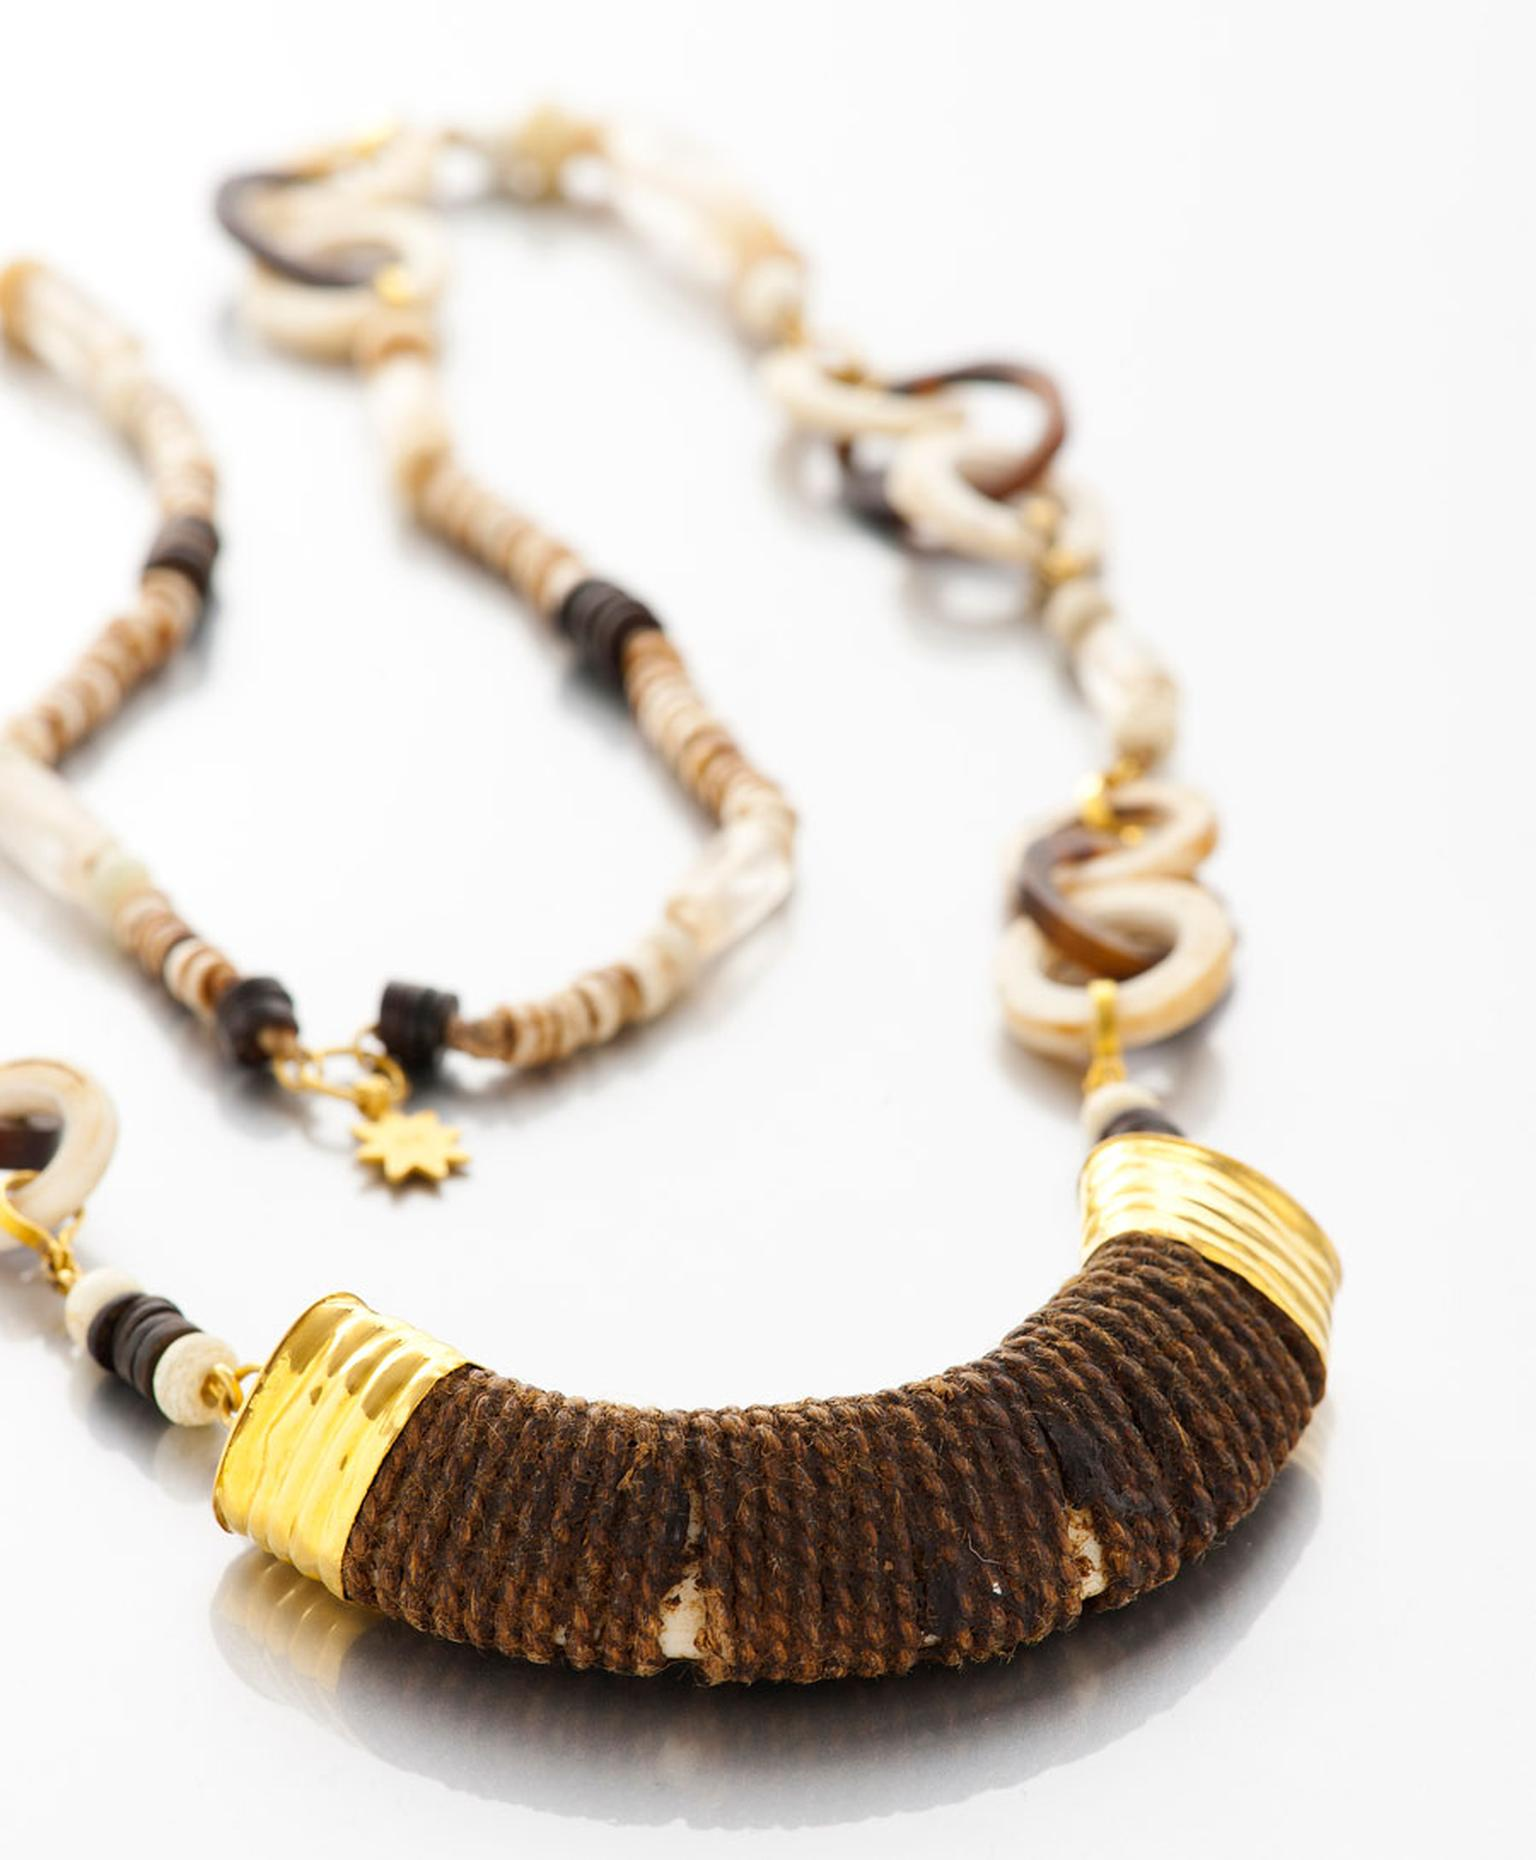 Lisa-Black-Boars-Tusk-Pendant-on-Necklace-of-Shell-and-Tortoise.jpg